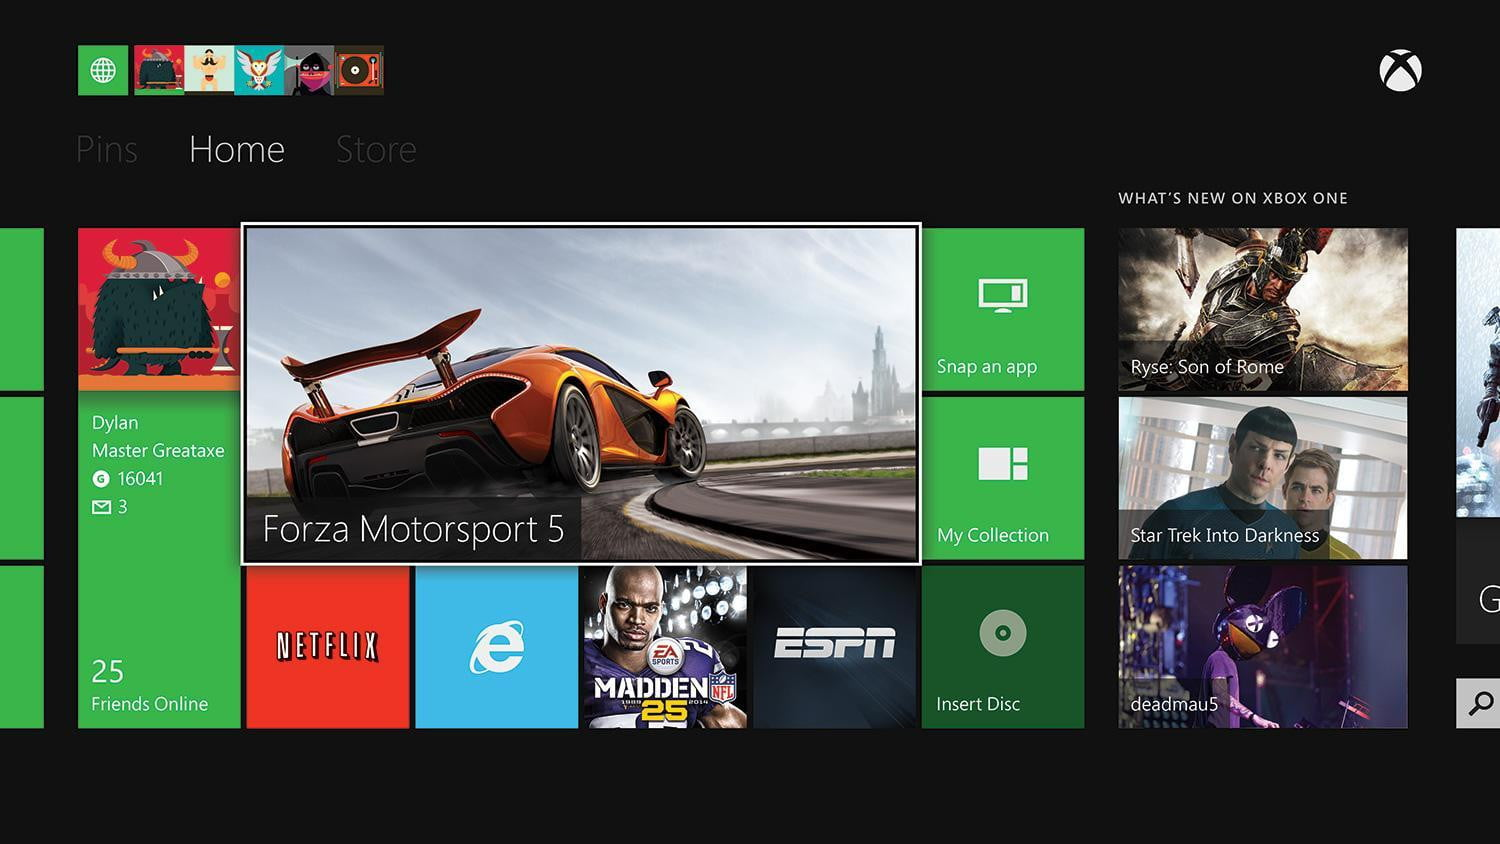 Porn on the Xbox One, PS4 | Digital Trends